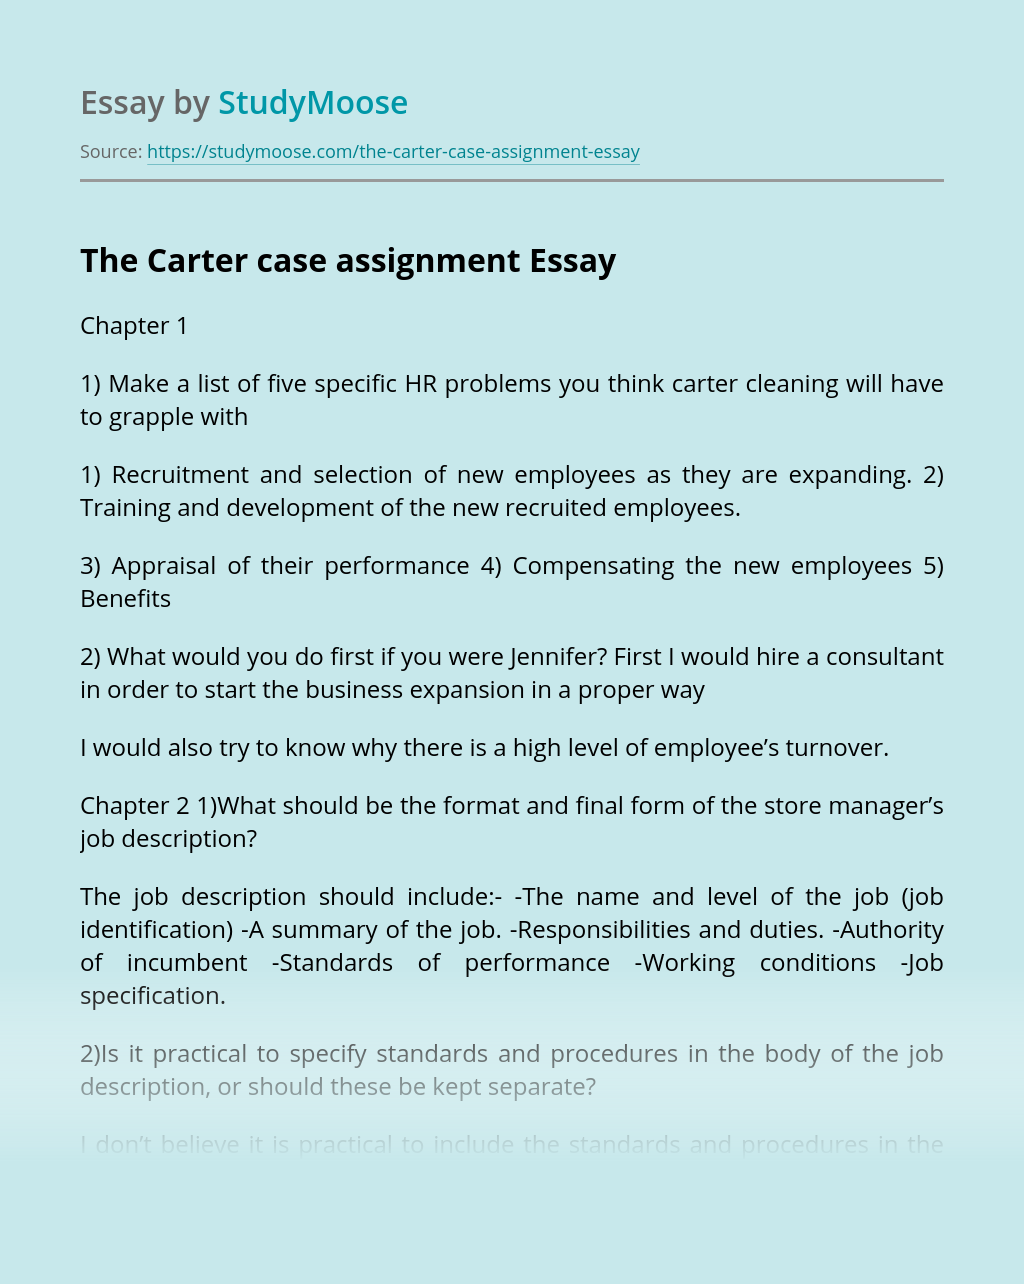 The Carter case assignment